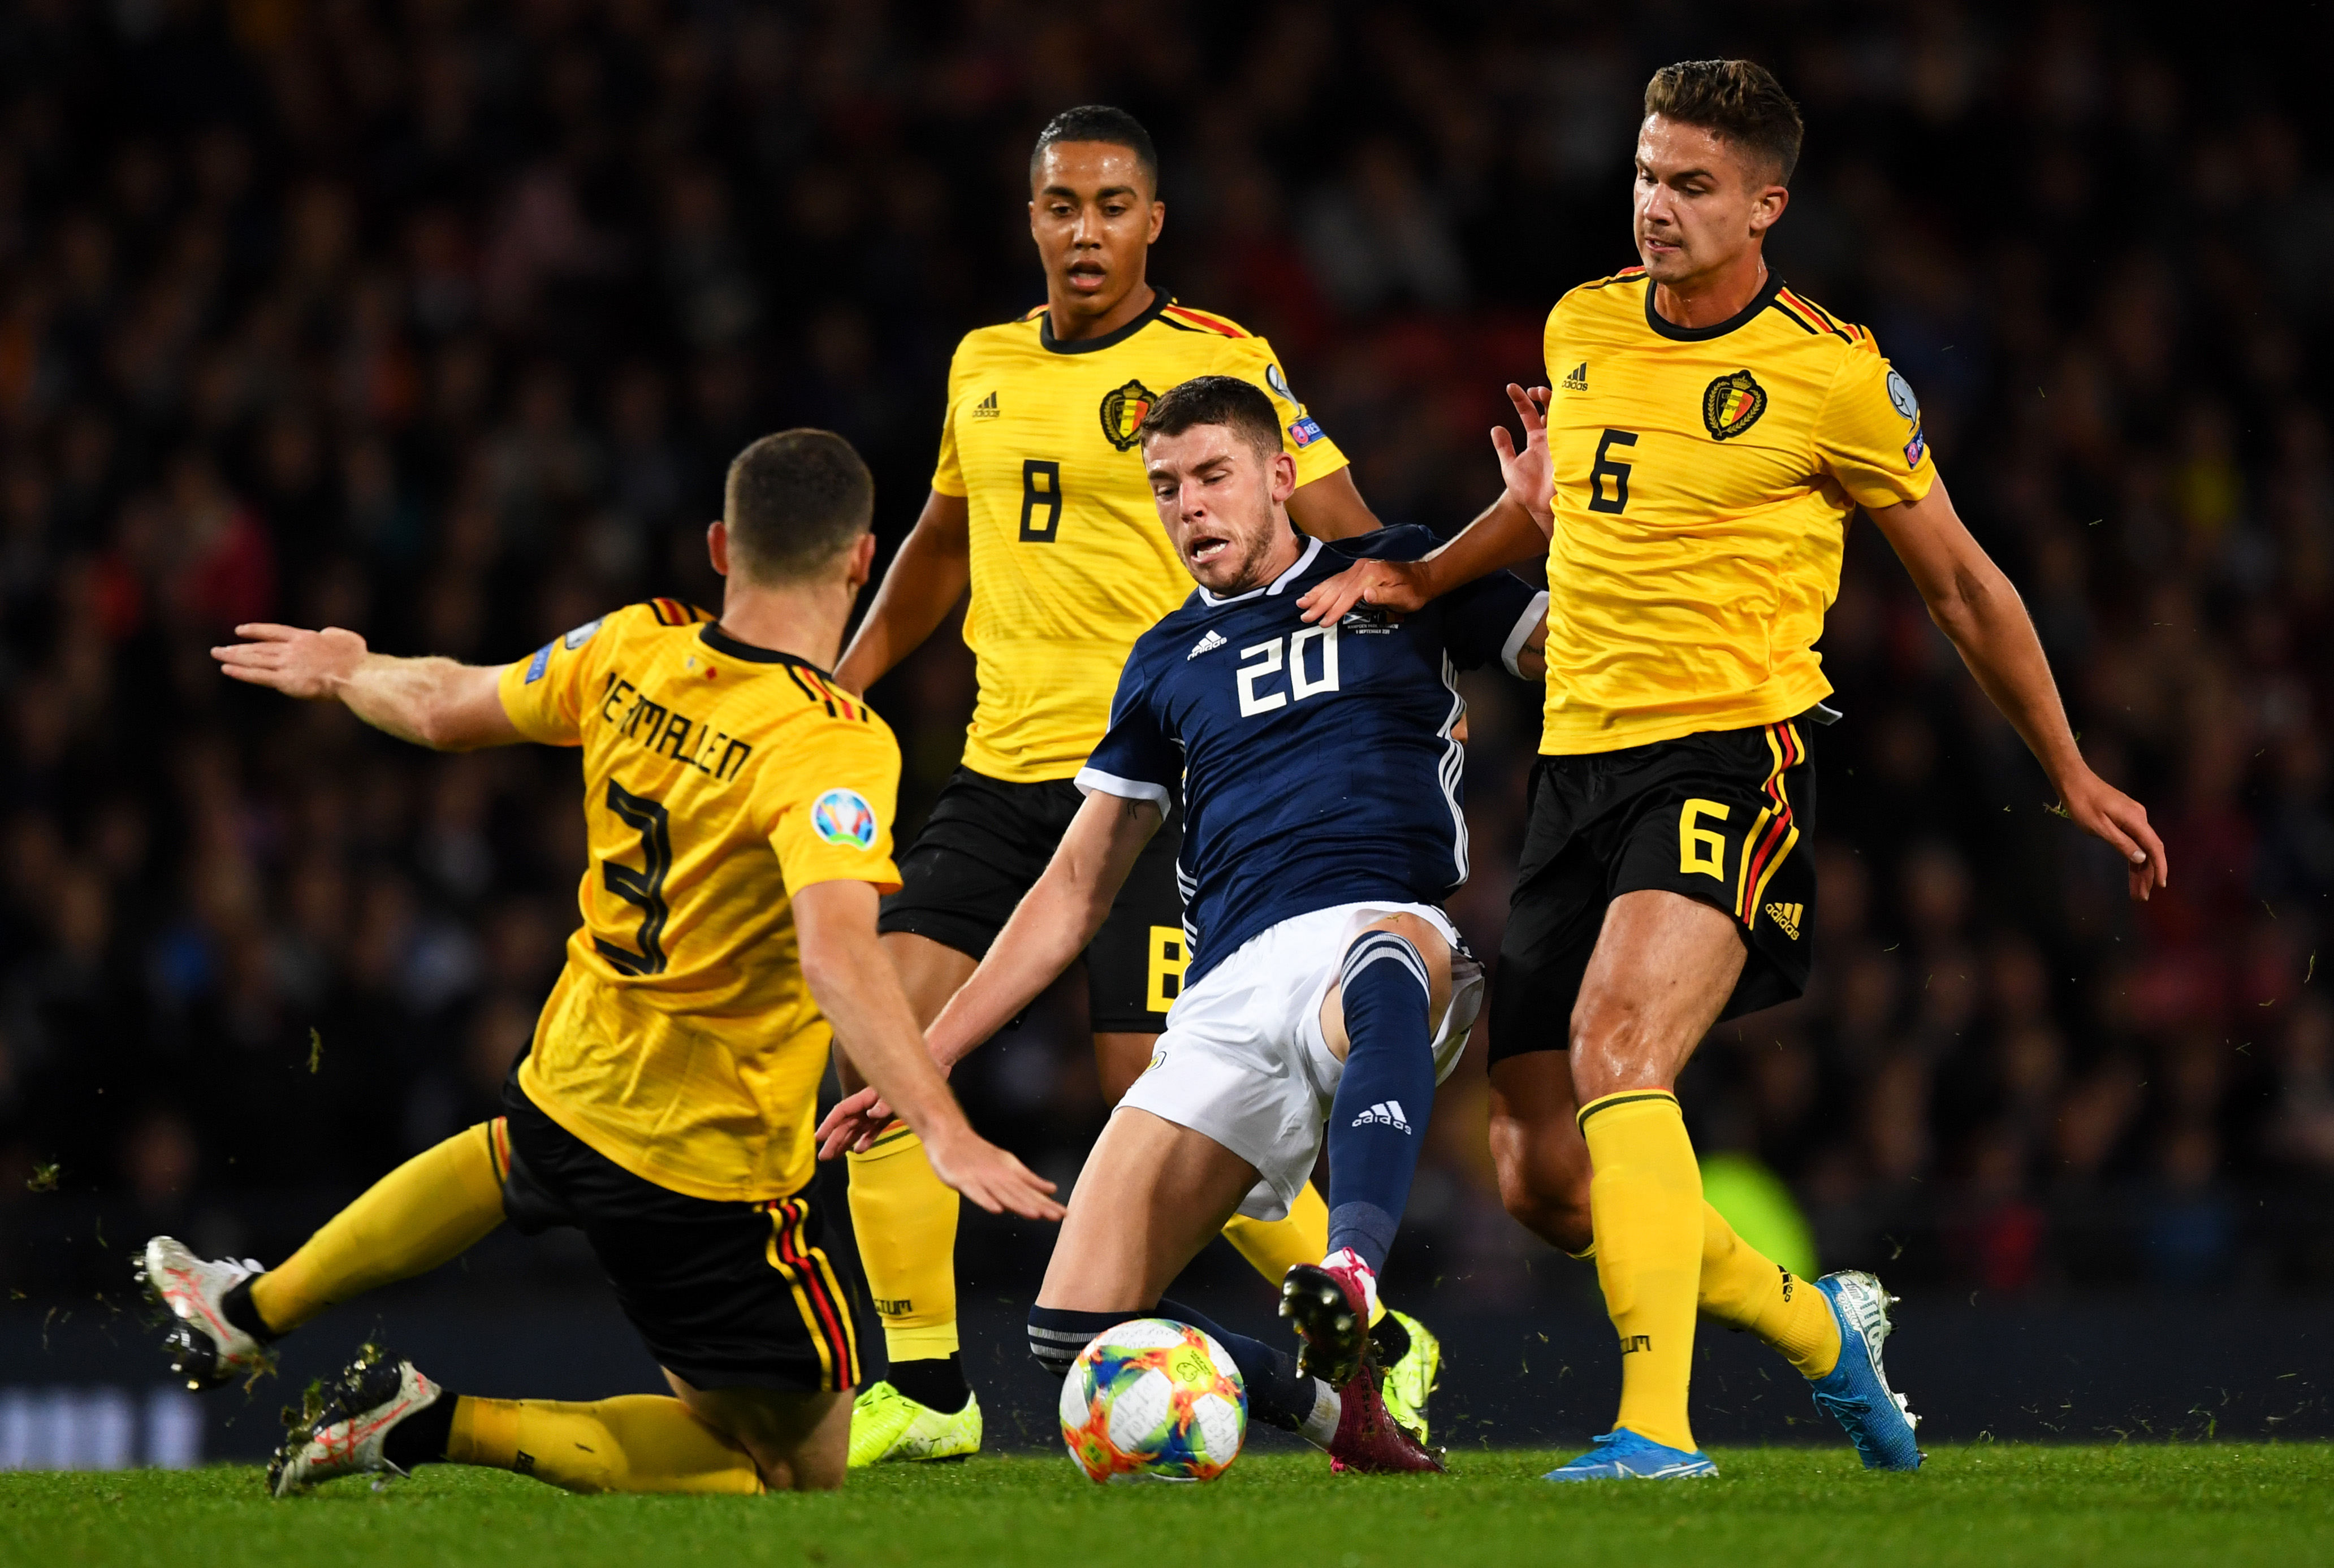 Scotland's Ryan Christie and Thomas Vermaelen during a UEFA Euro 2020 qualifier between Scotland and Belgium.